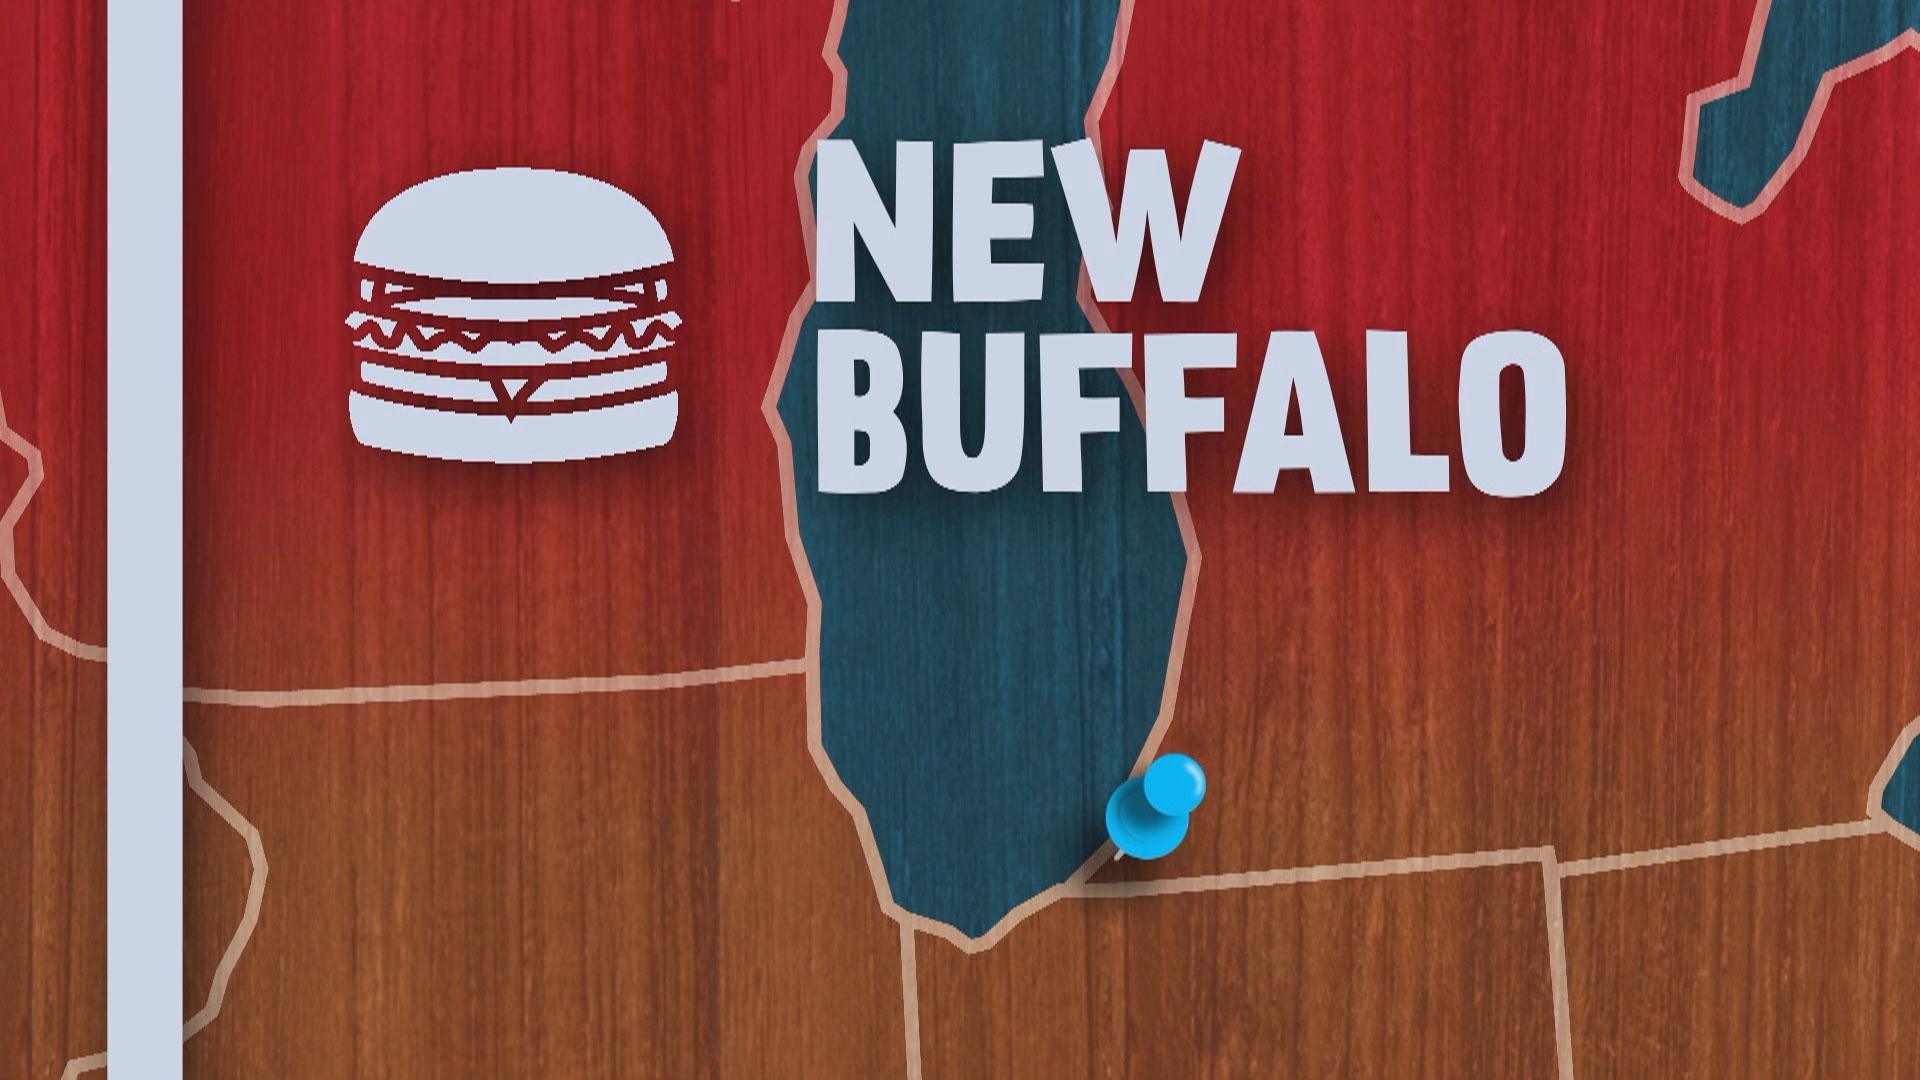 New Buffalo, Michigan